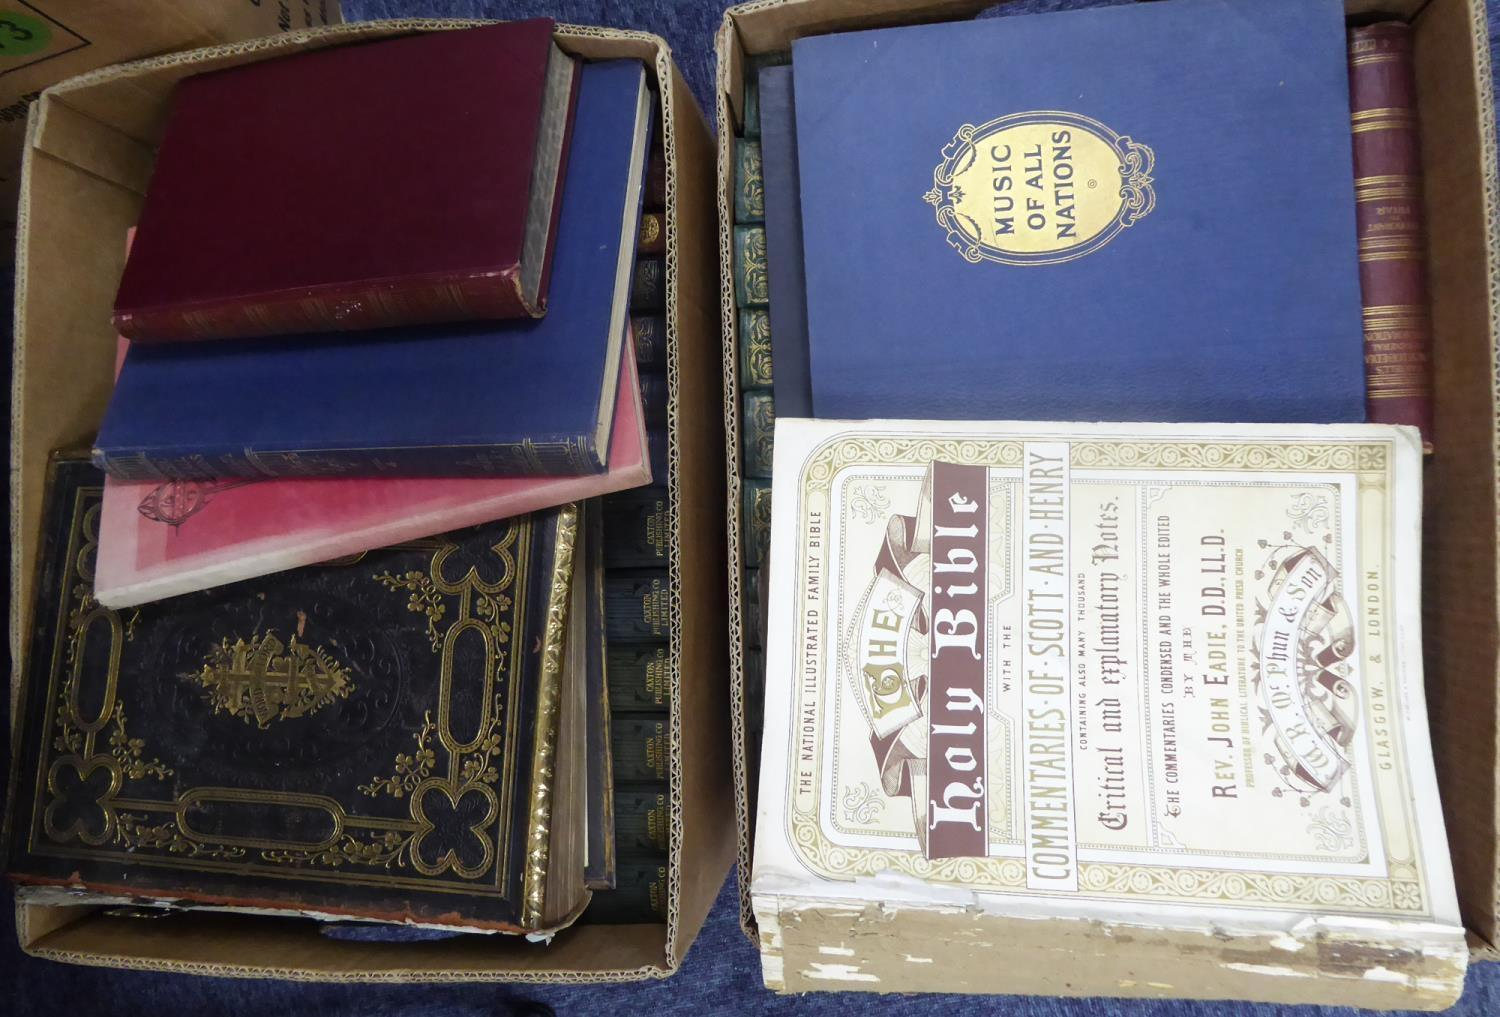 Lot 54 - BINDINGS-The Casquet of Literature, 4 vols, pub Blackie, quality decorative binding, together with a